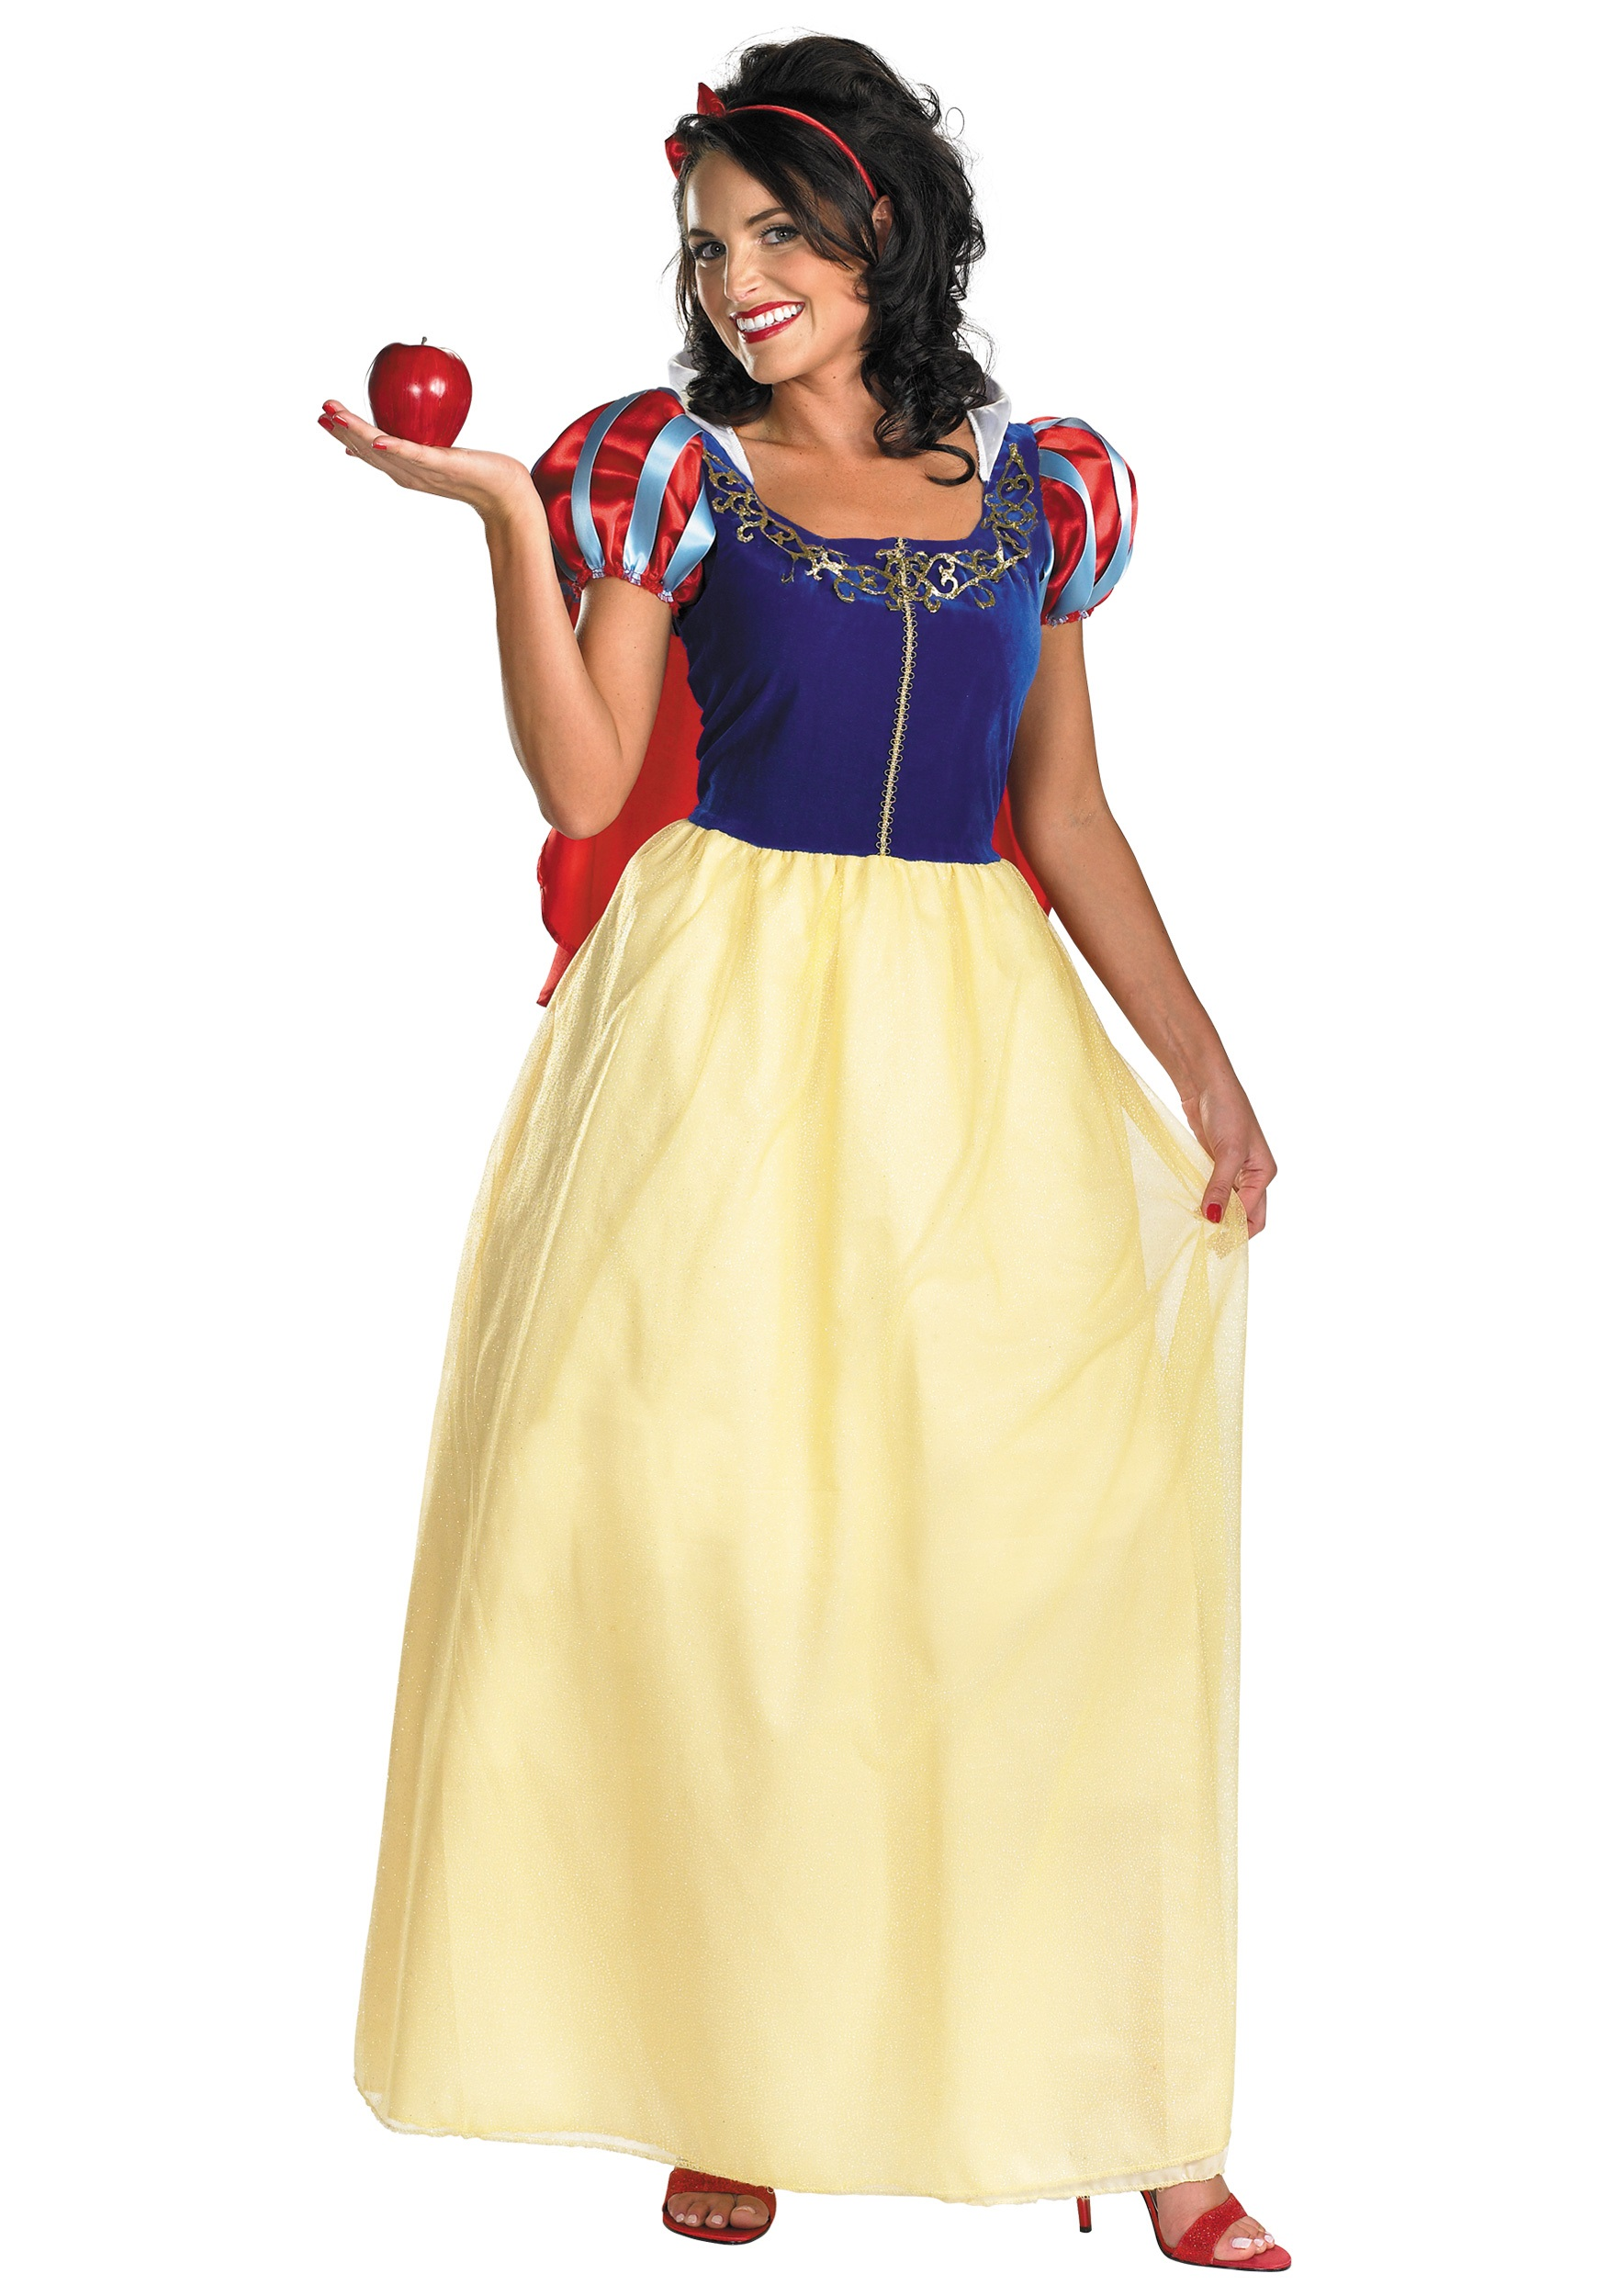 Halloween outdoor decorations to make - Plus Size Deluxe Snow White Costume